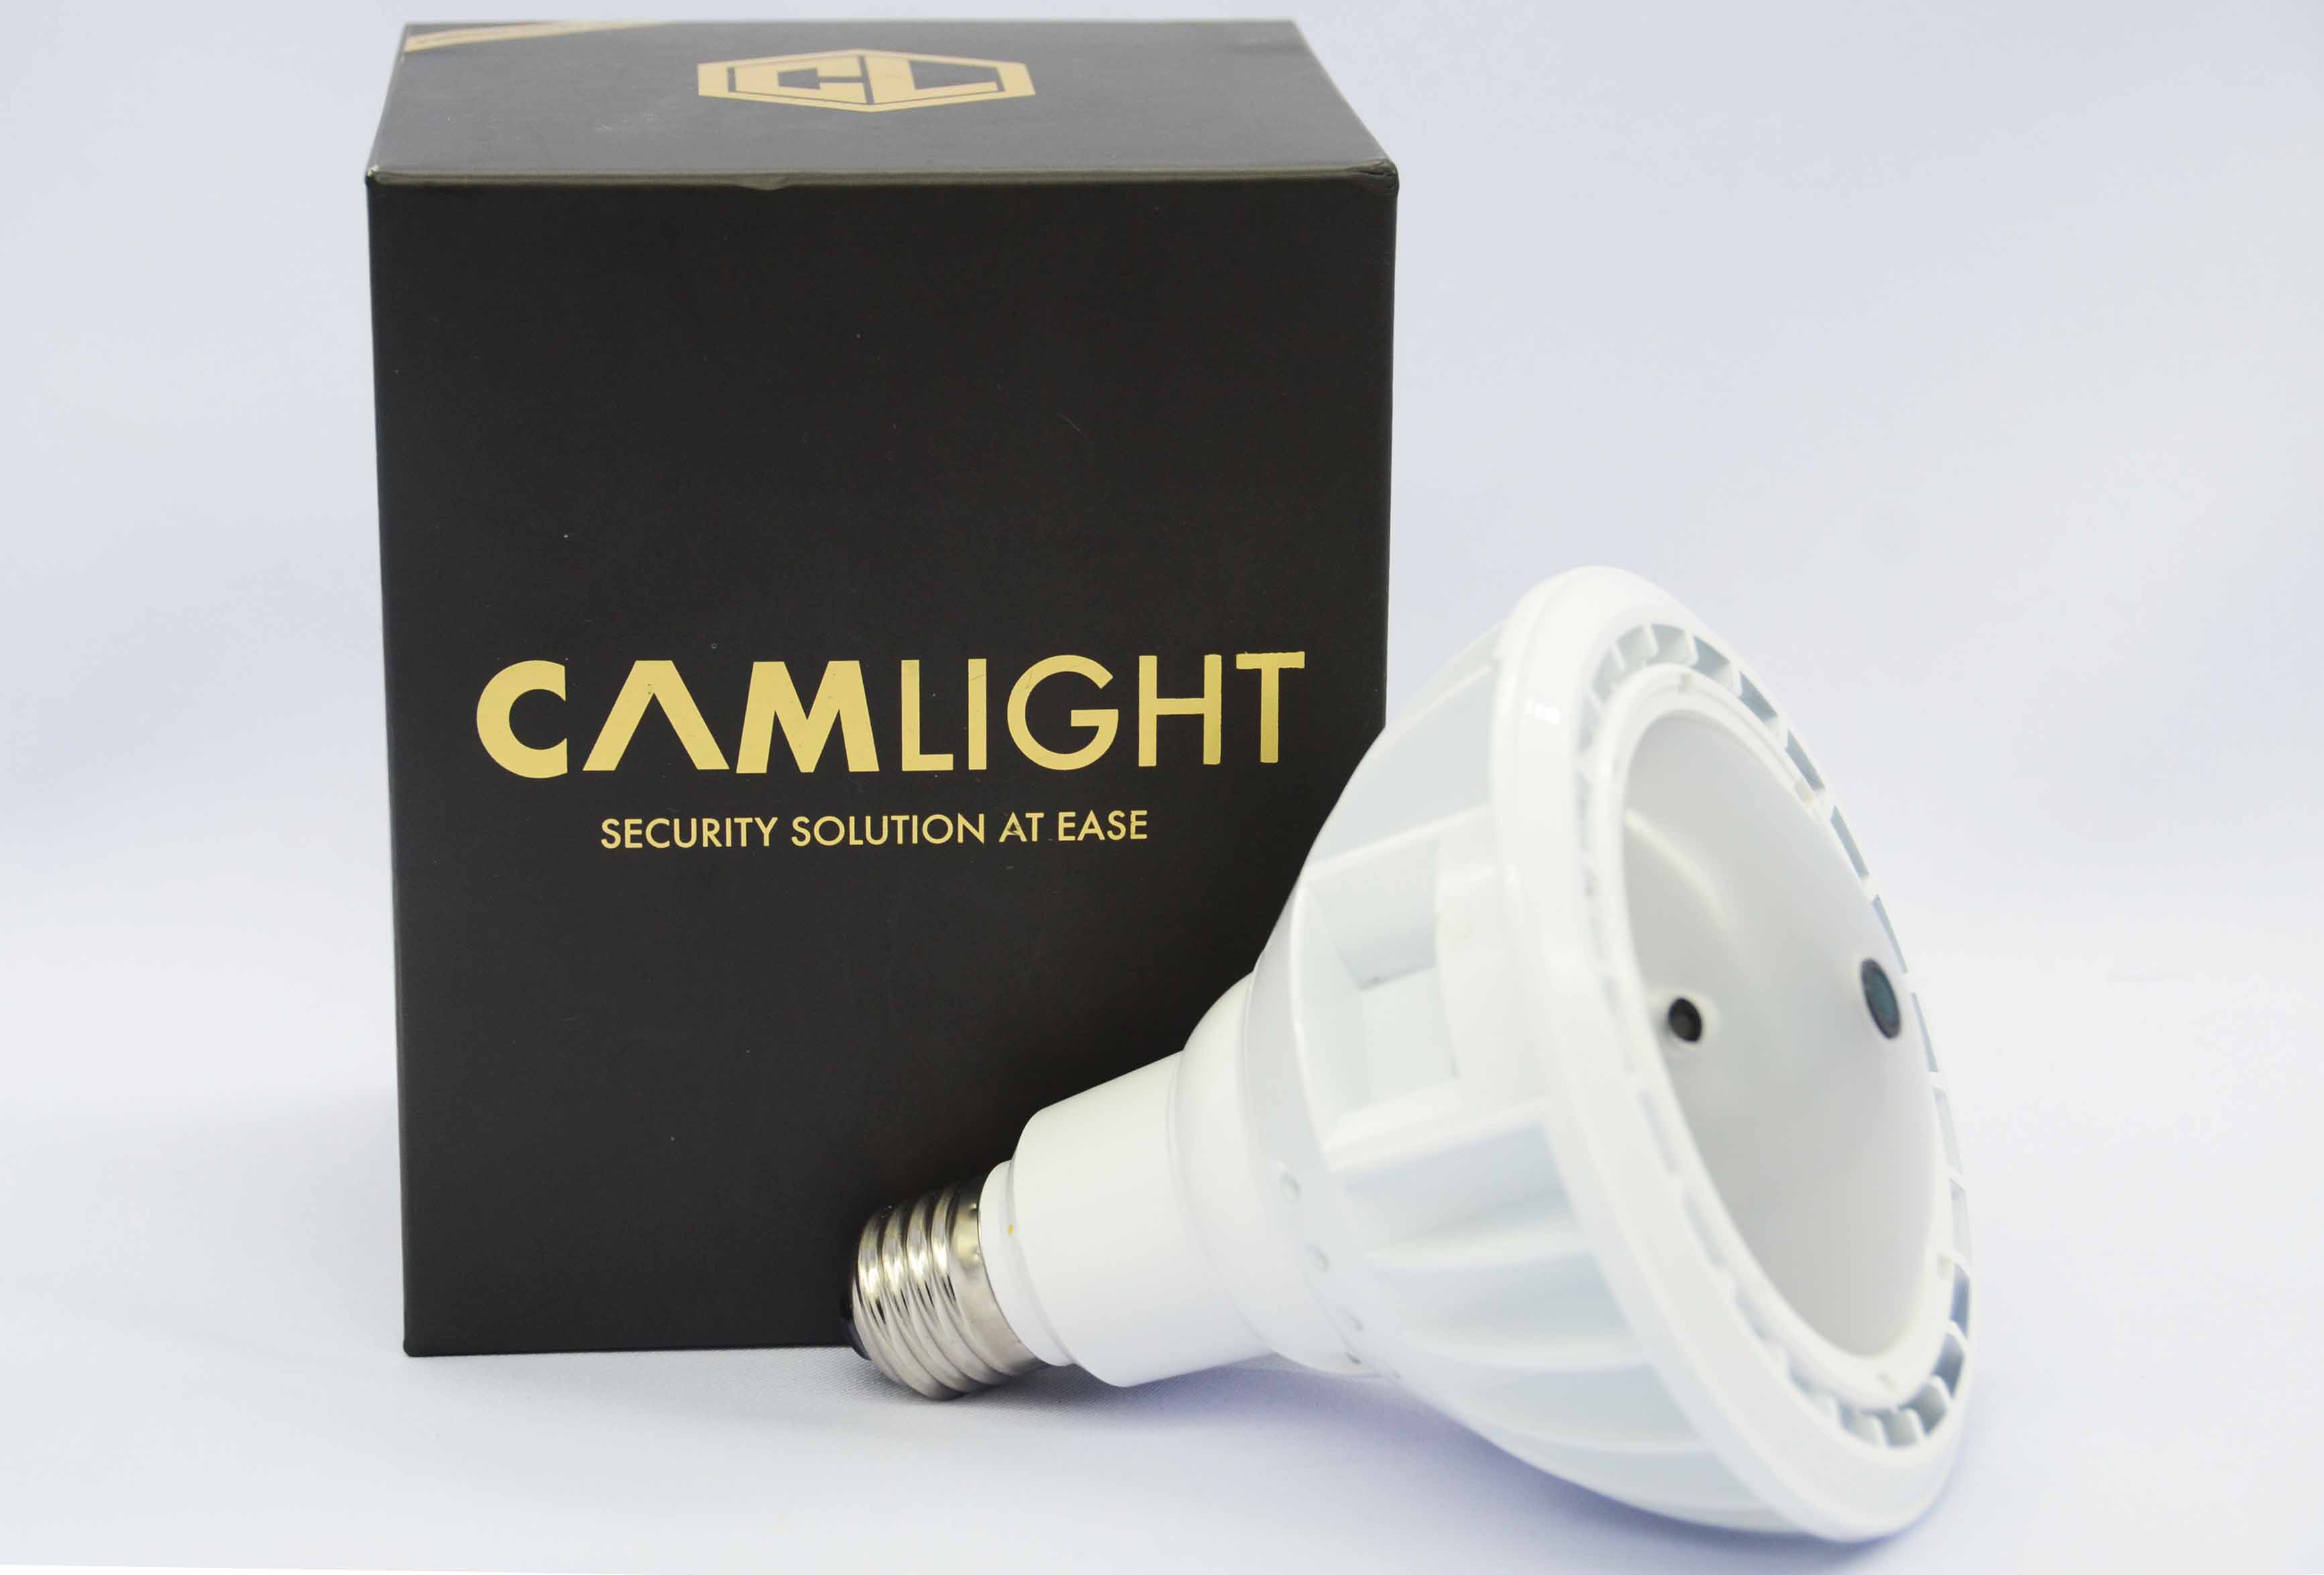 Camlight home security system